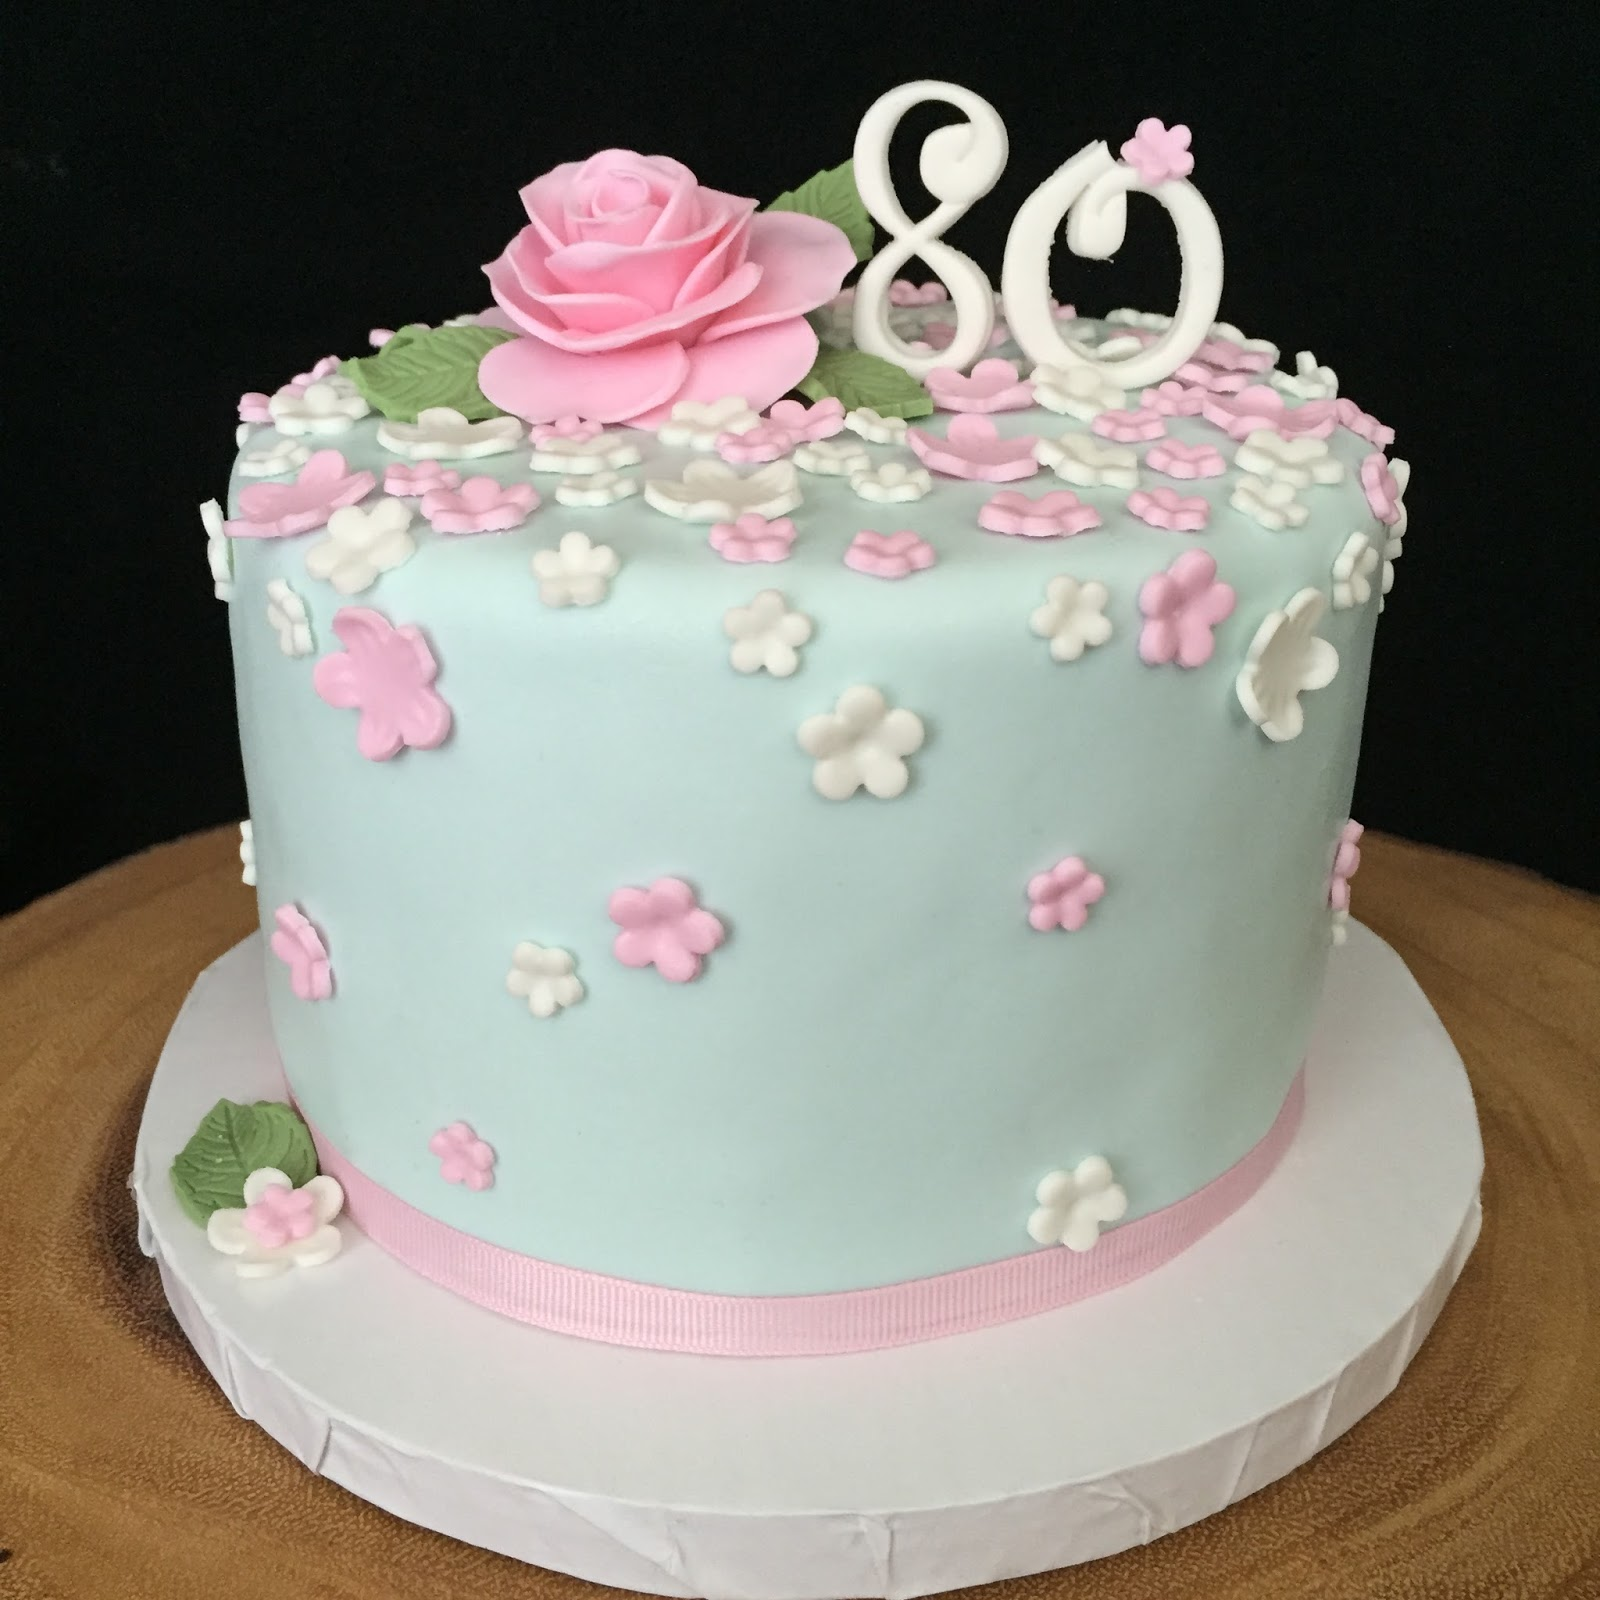 Female 80th Birthday Cake Ideas